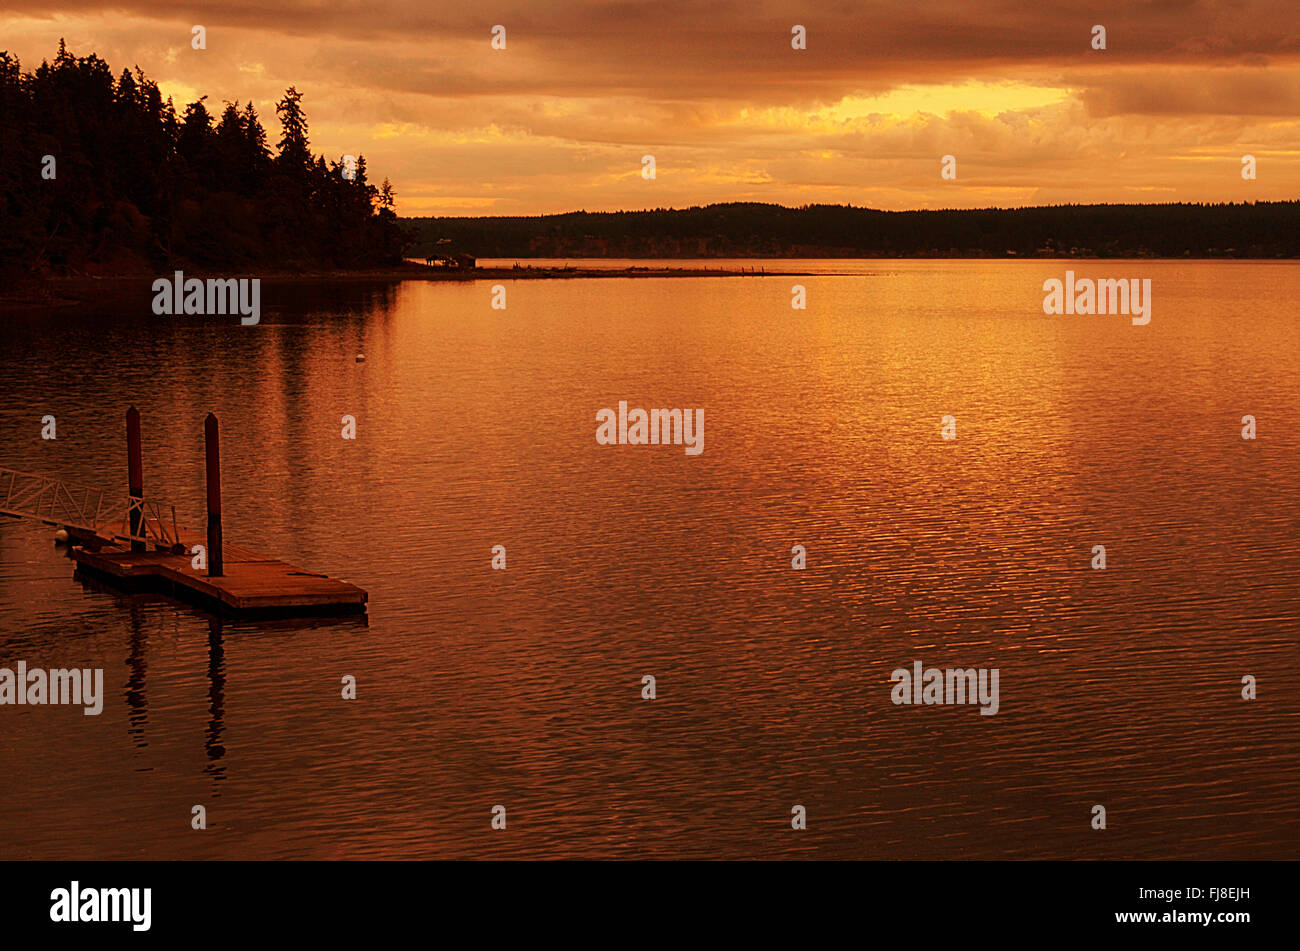 Sunrise over Discovery Bay, WA. Boat dock, no boat, deep orange brown sky reflecting off water. - Stock Image